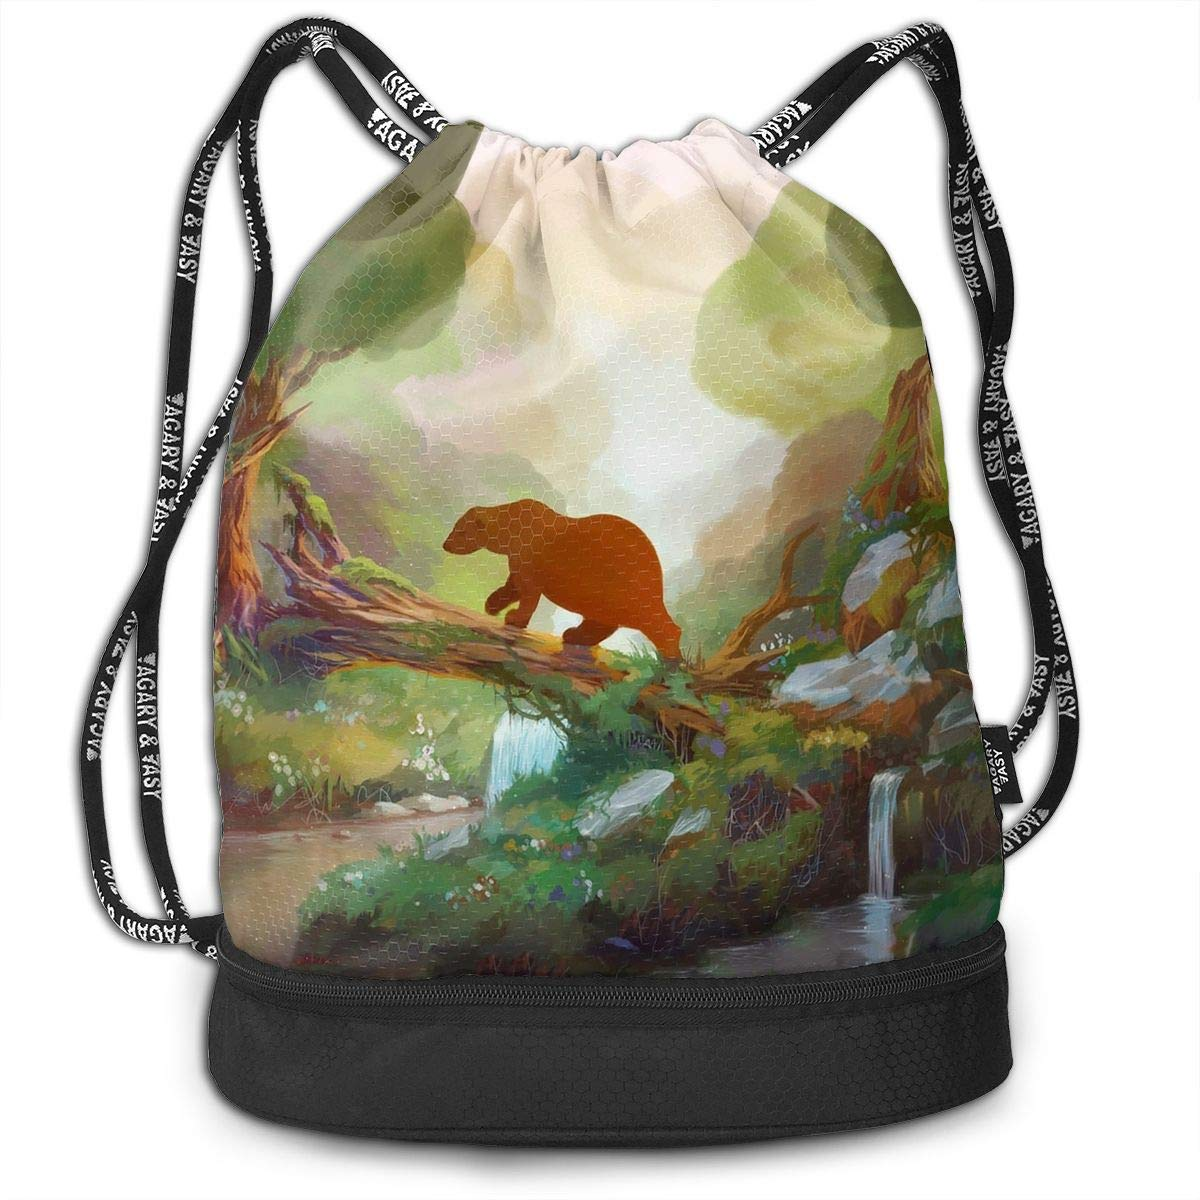 Address Verb Drawstring Backpack with Pocket Multifunctional Sturdy Bear Forest Sackpack Sports Gym Shoulder String Bags by Address Verb